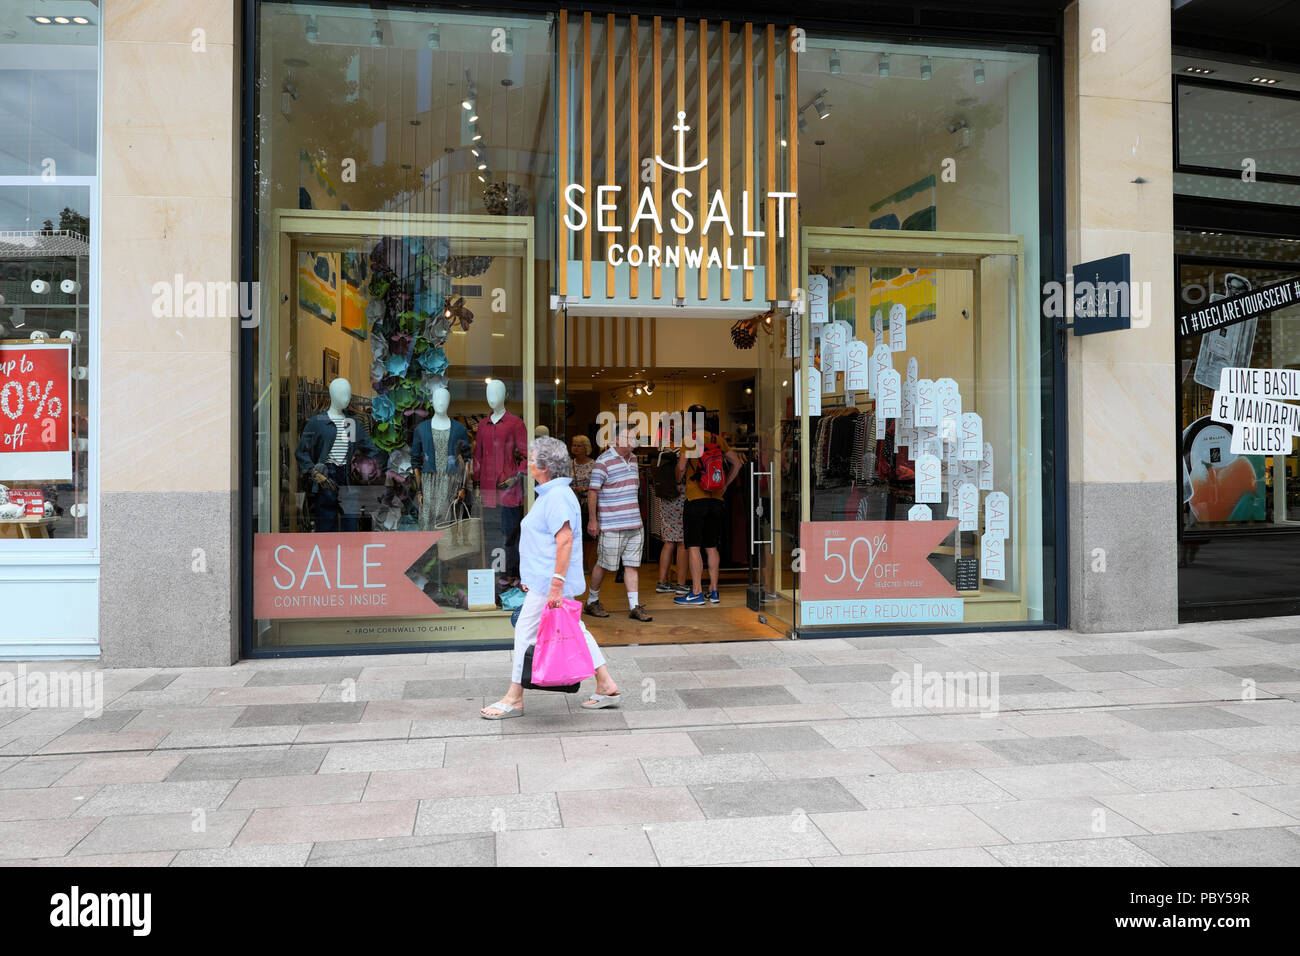 Shopper walking past the Seasalt Cornwall clothing store in Cardiff City Centre Wales UK    KATHY DEWITT - Stock Image